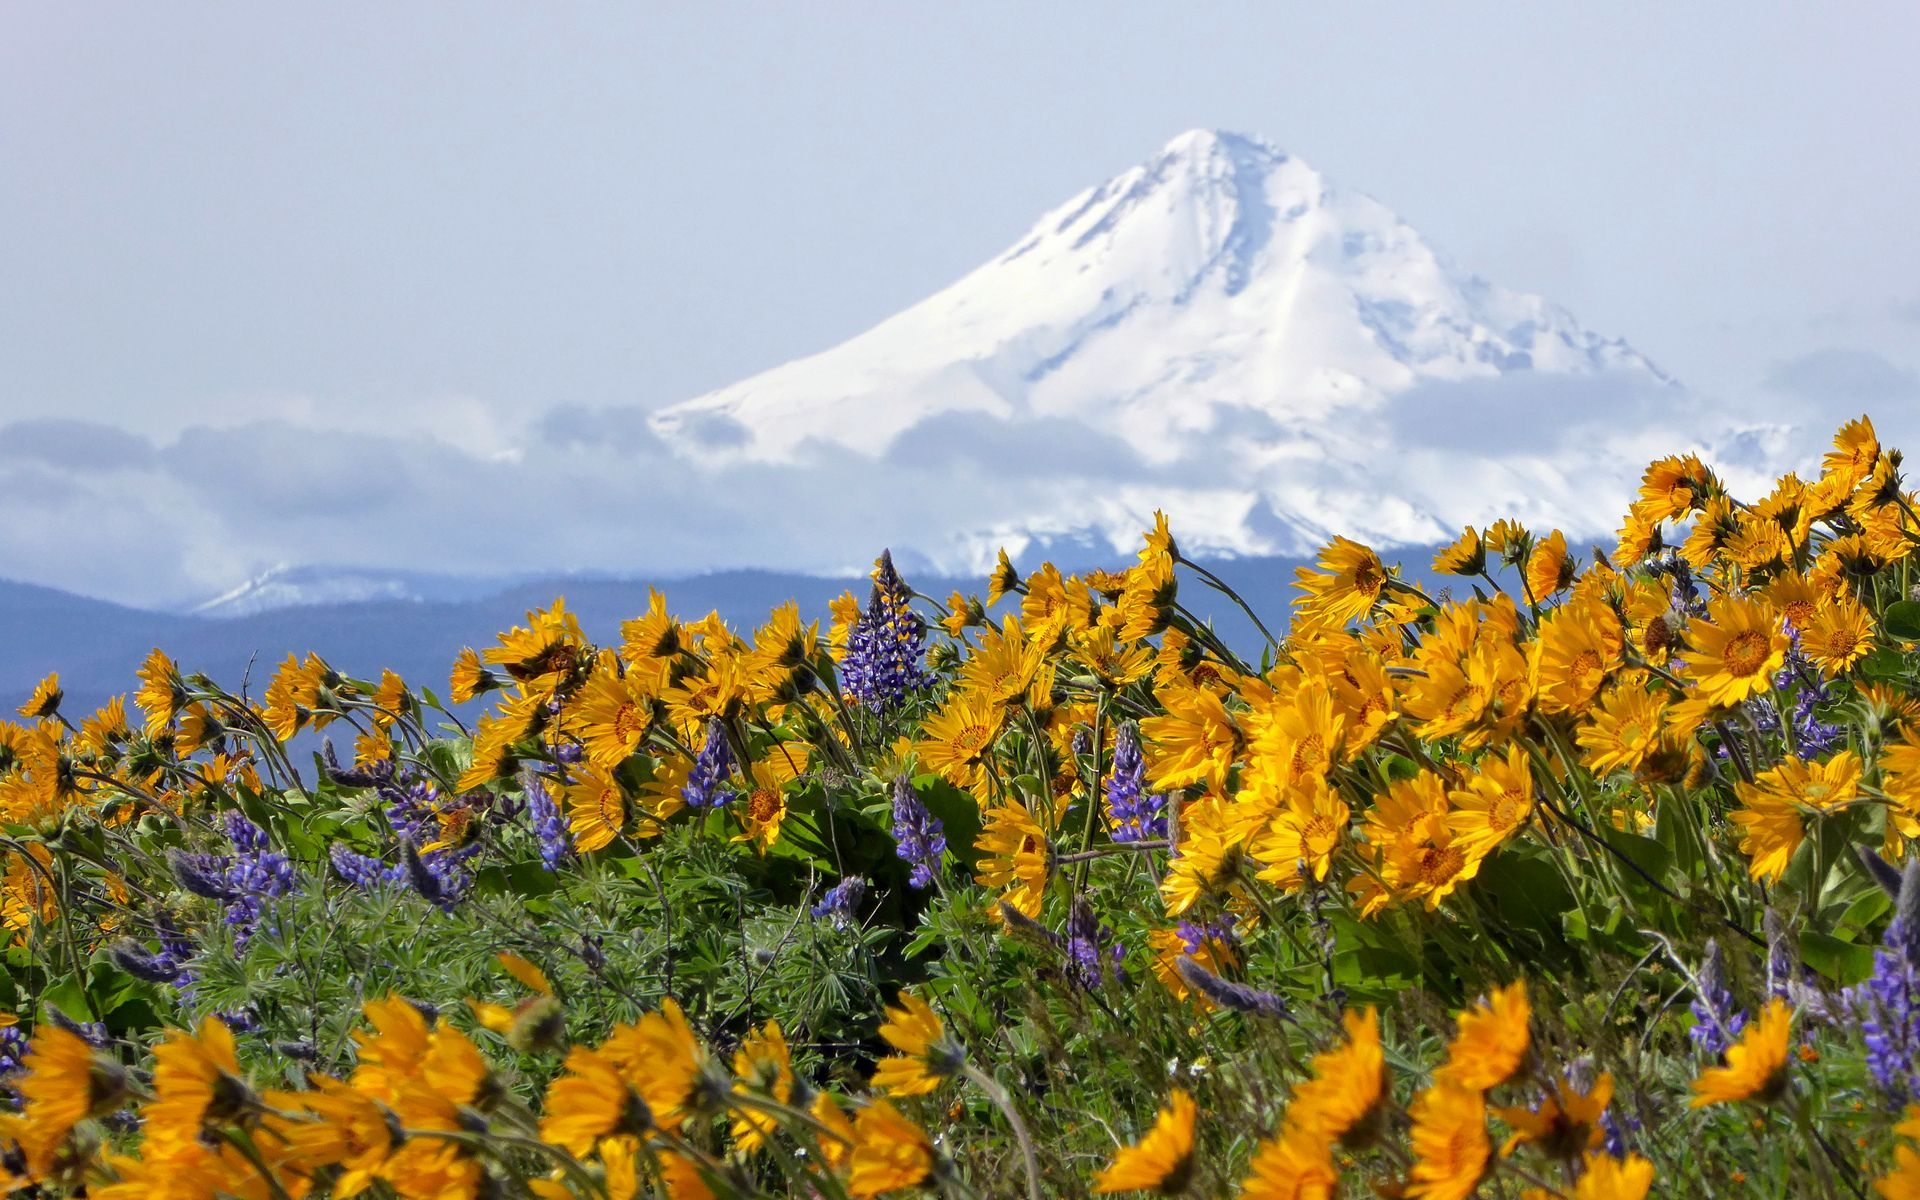 Incredible display of Spring wildflowers (balsamroot and lupine) in the Gorge, seen April 15 at Sevenmile Hill.